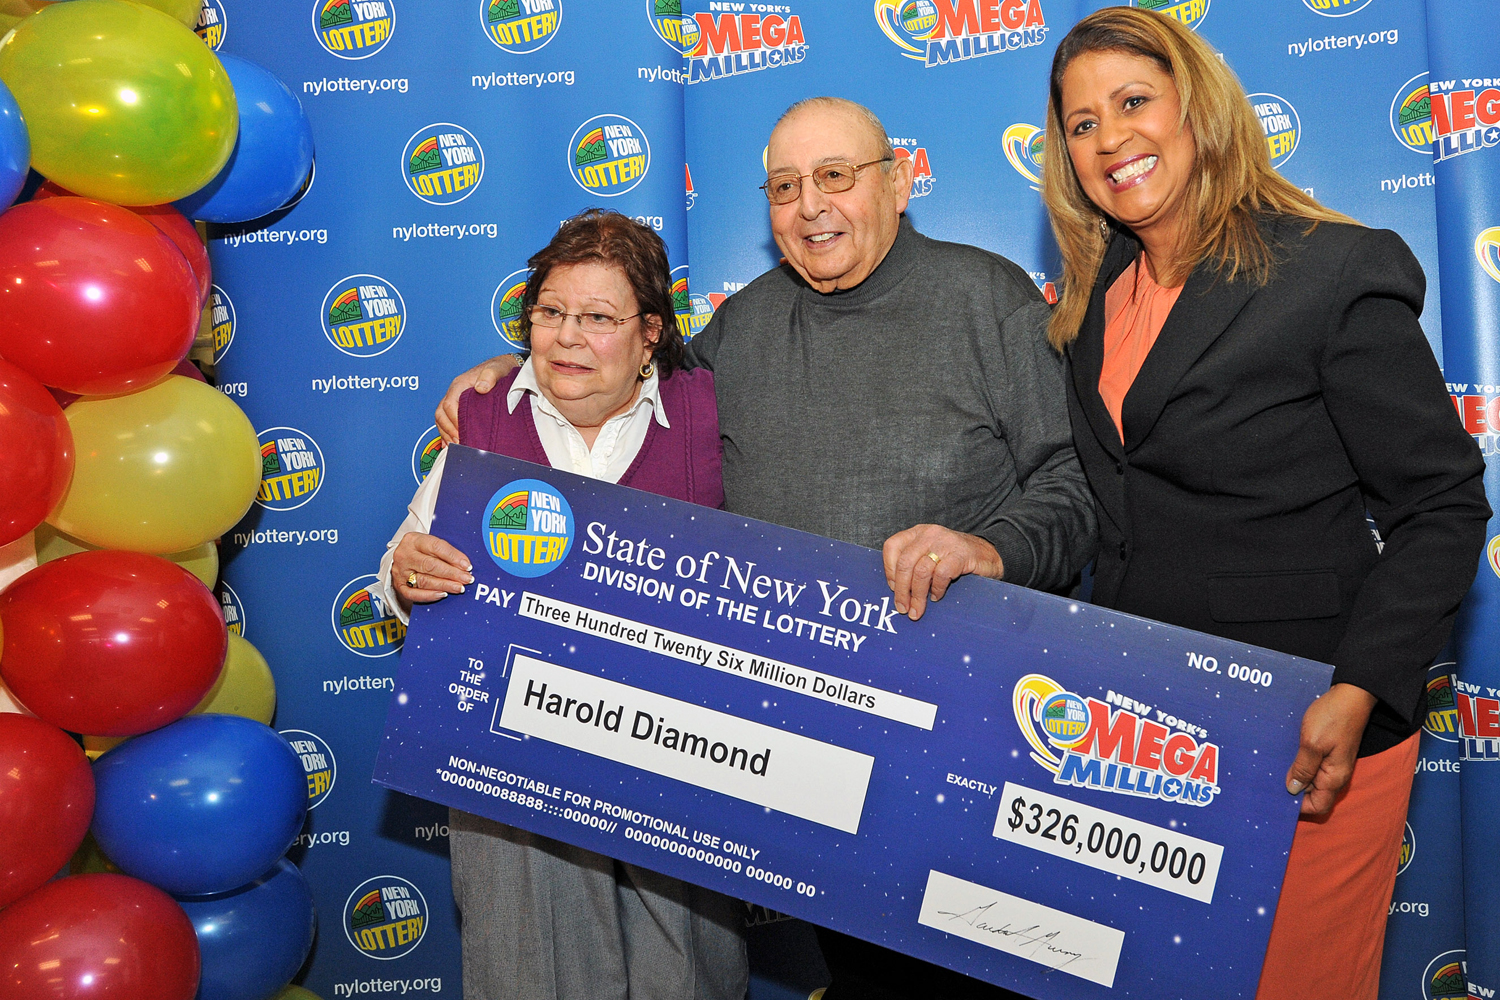 Harold Diamond and his wife Carol receive their ceremonial check from Yolanda Vega at the Valero gas station in the Town of Wallkill, N.Y., on Monday, Jan. 12, 2015.